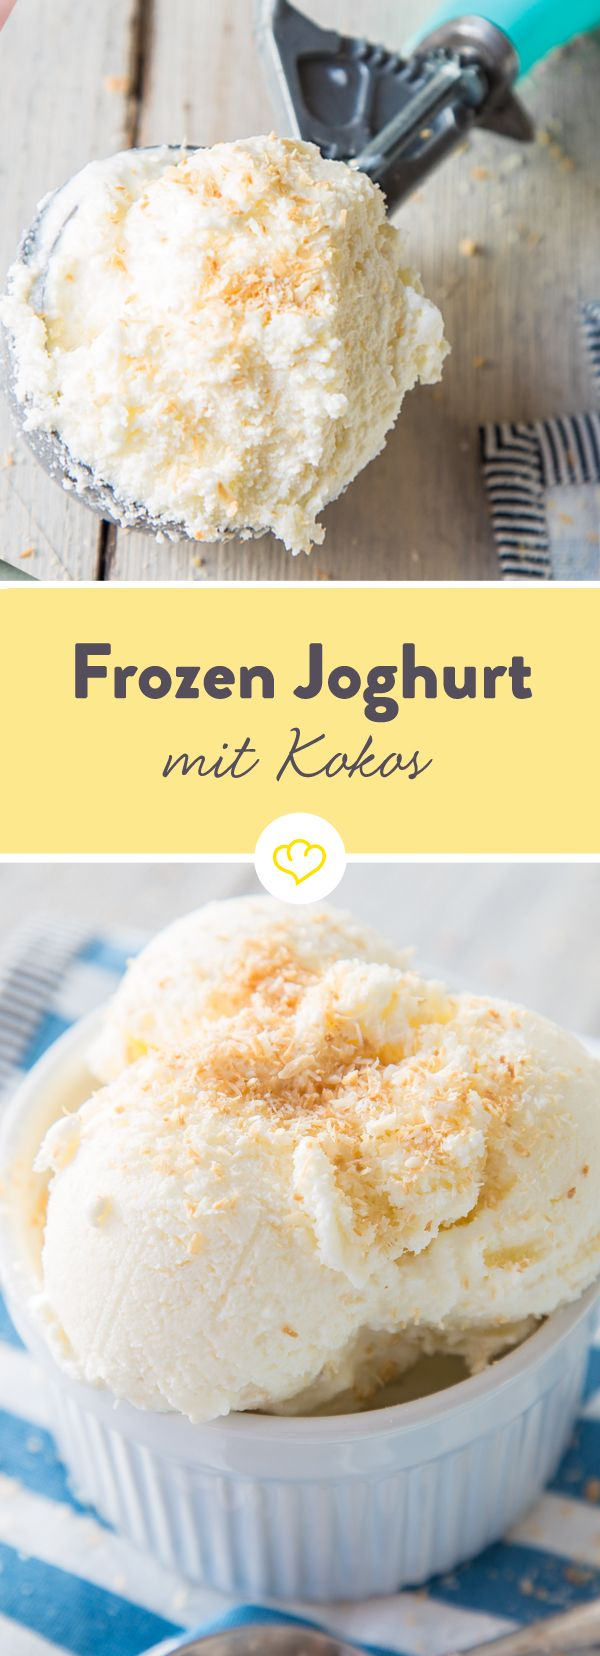 kokos frozen joghurt exotisch cremig und eiskalt recipe sorbet parfait and icecream. Black Bedroom Furniture Sets. Home Design Ideas